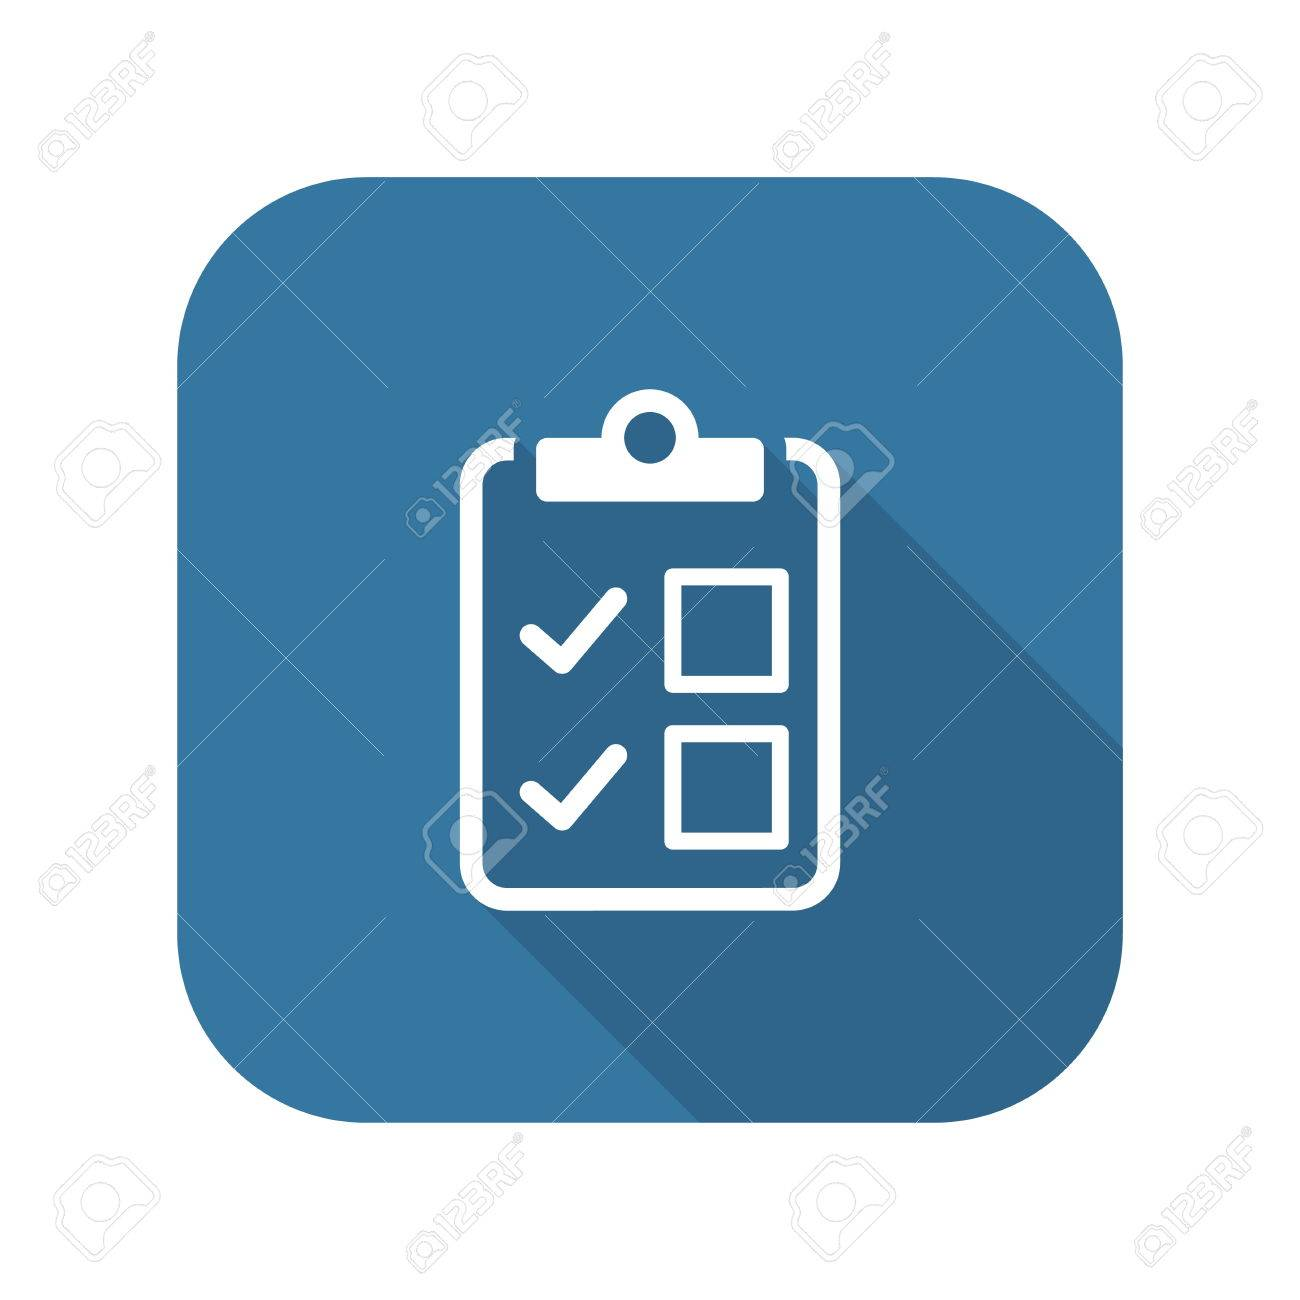 Appointment request and medical services icon royalty free appointment request and medical services icon stock vector 80871922 altavistaventures Choice Image